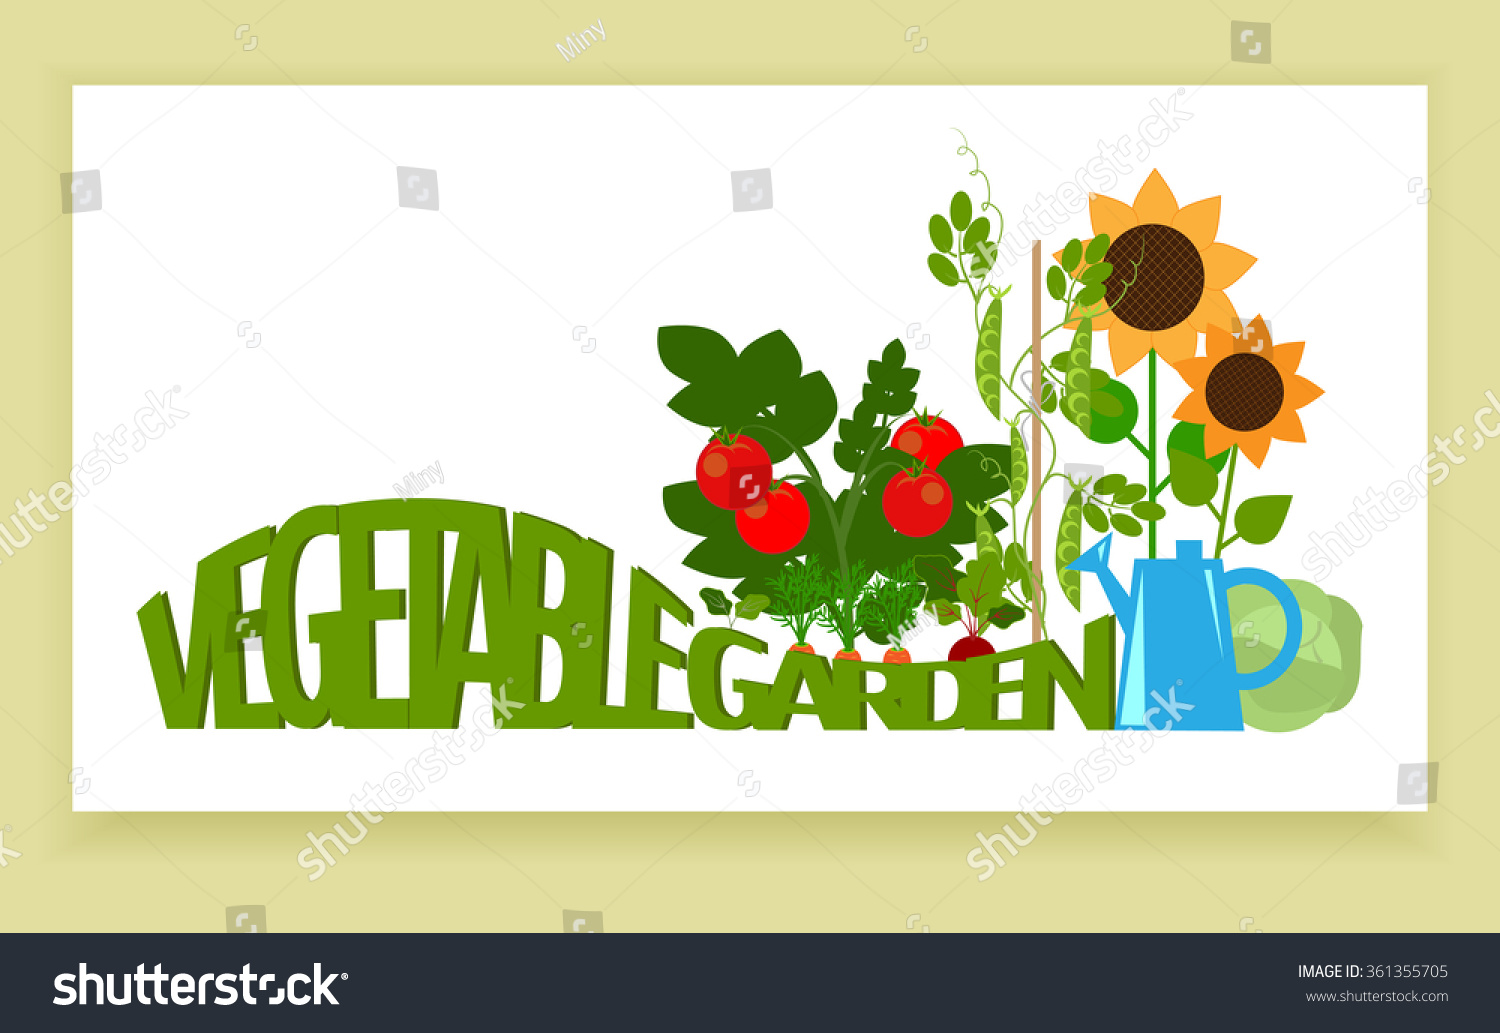 Vegetable garden graphic - Banner A Vegetable Garden Vegetables In The Garden And Text Country Garden Bedding